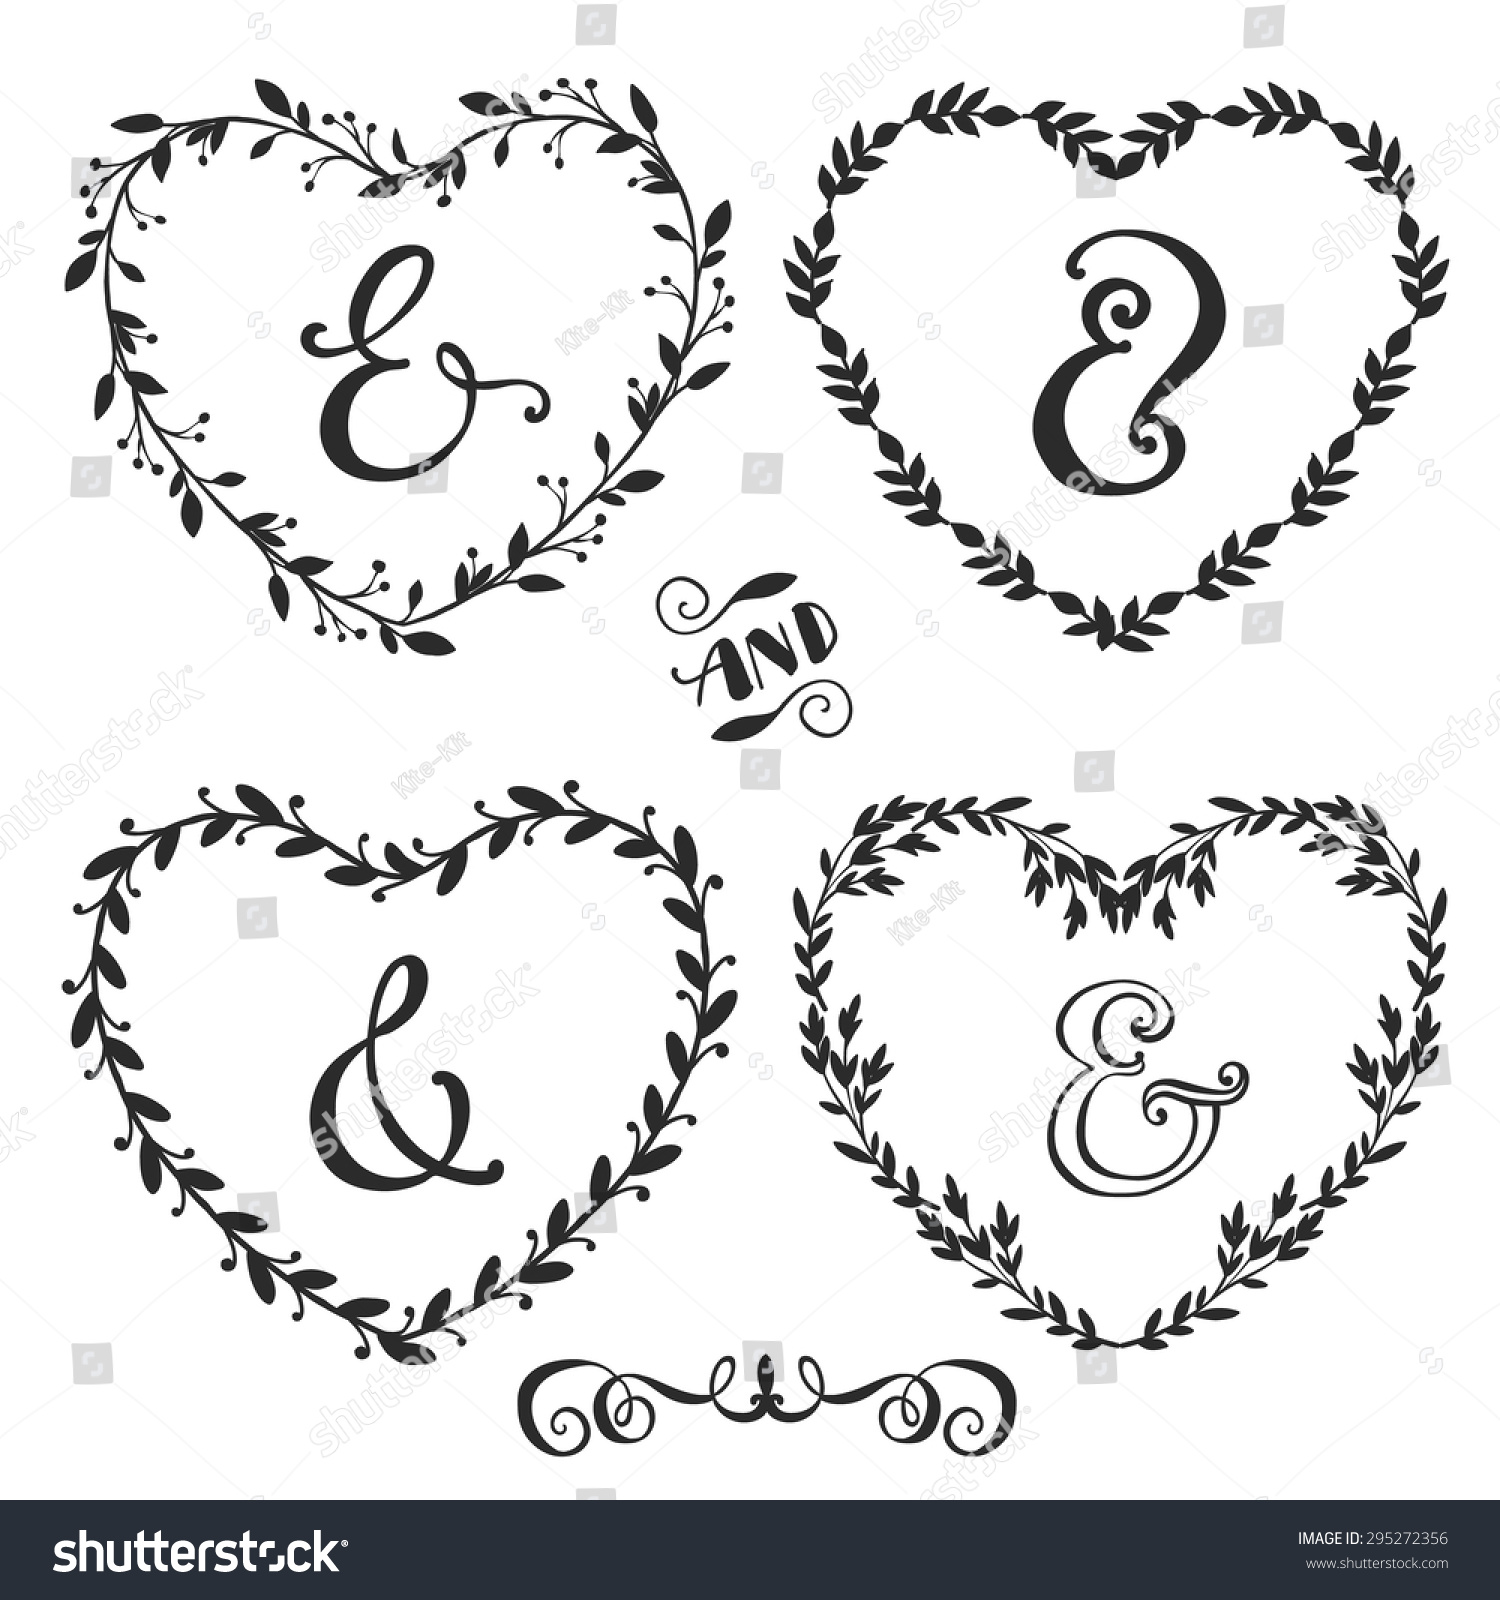 hand drawn rustic vintage heart wreaths with lettering floral vector graphic nature design elements